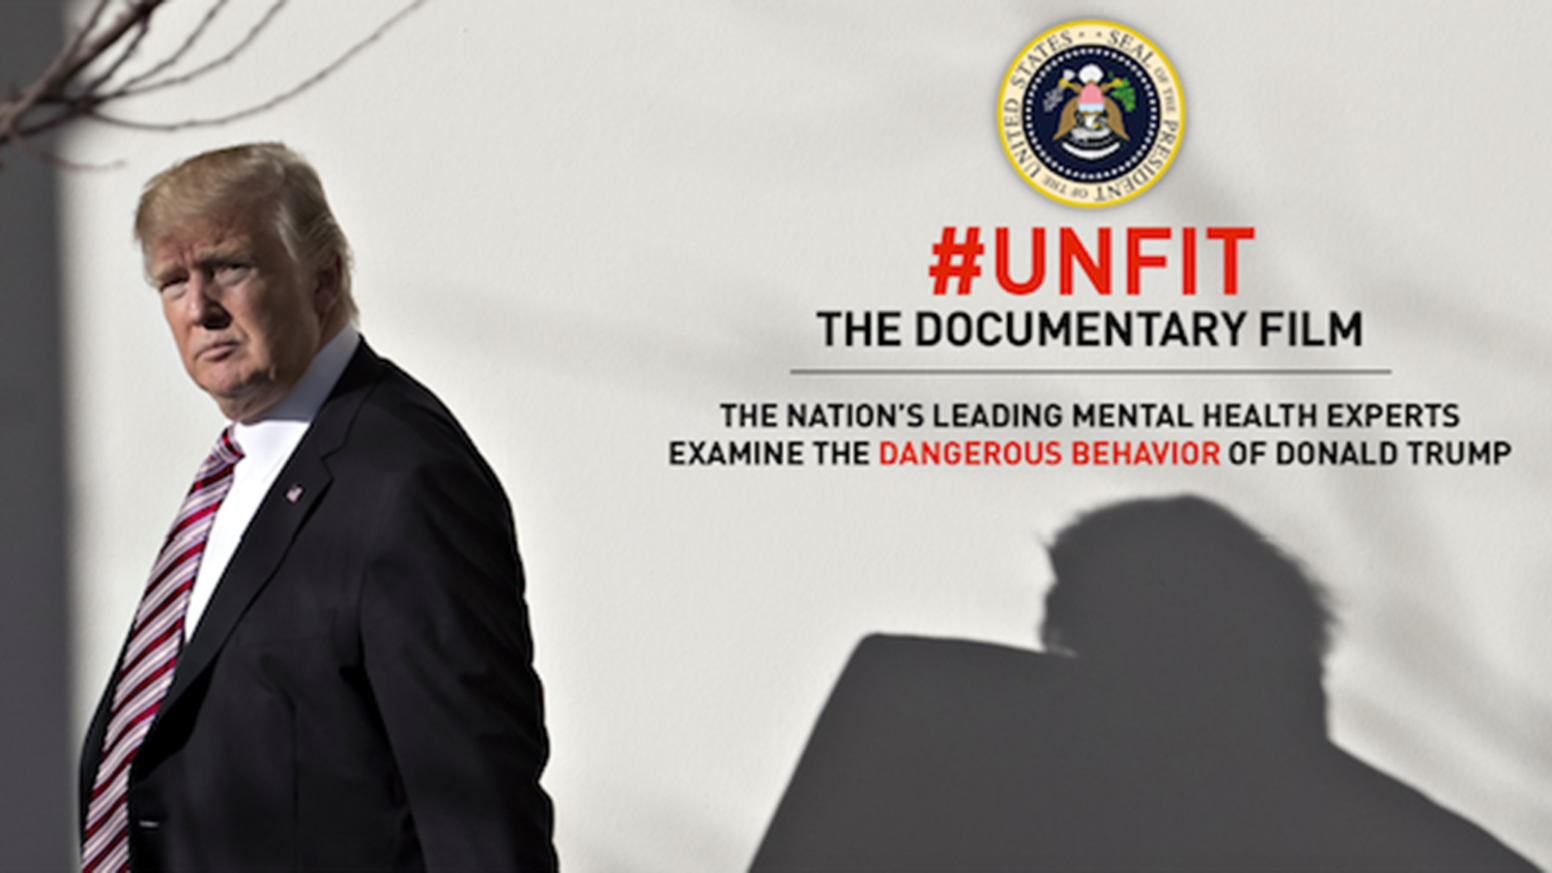 Definitive analysis of Trump by top US mental health experts. Science. Truth. Duty to Warn. We ALL have an interest in this discussion. THIS KICKSTARTER HAS ENDED - CLICK BELOW, VISIT OUR WEBSITE, SUPPORT THE FILM, CLAIM A REWARD.